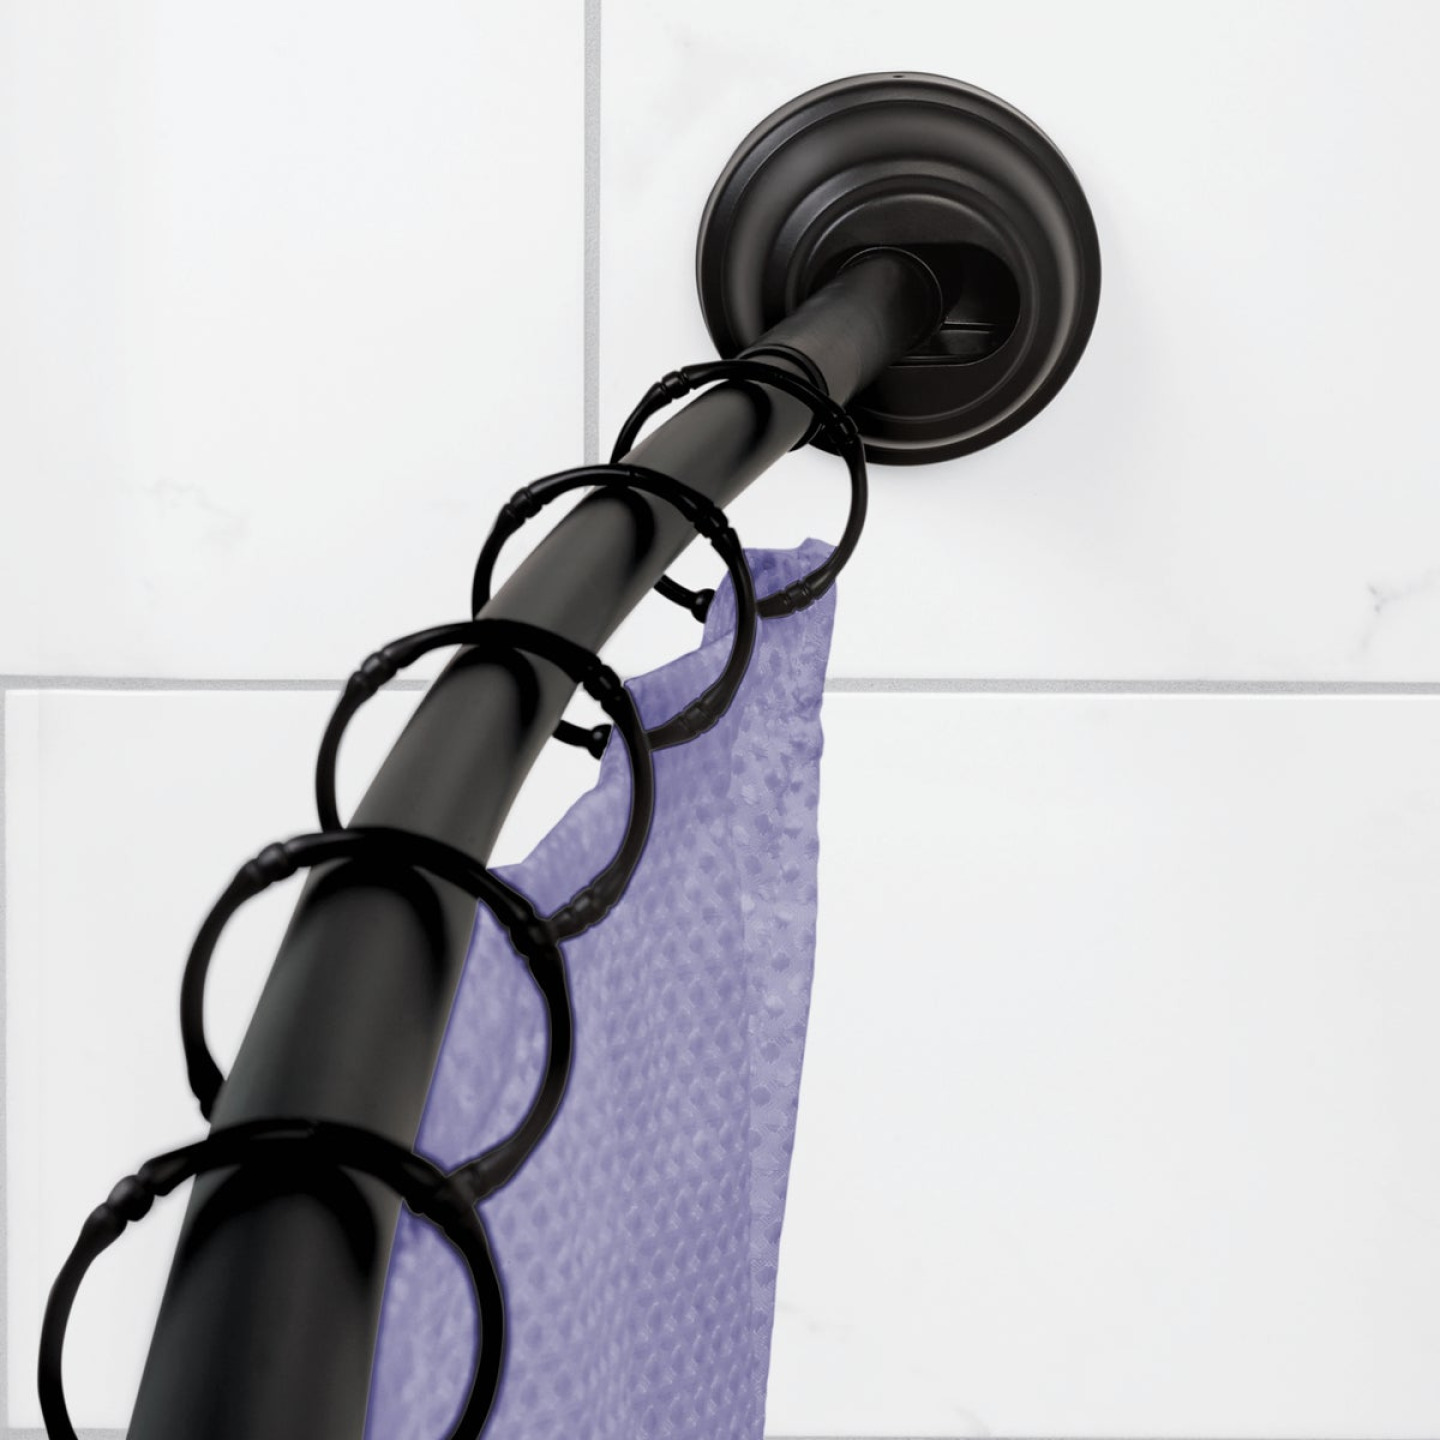 Zenna Home NeverRust 50 In. to 72 In. Adjustable Fixed or Tension Curved Shower Rod in Matte Black Image 2